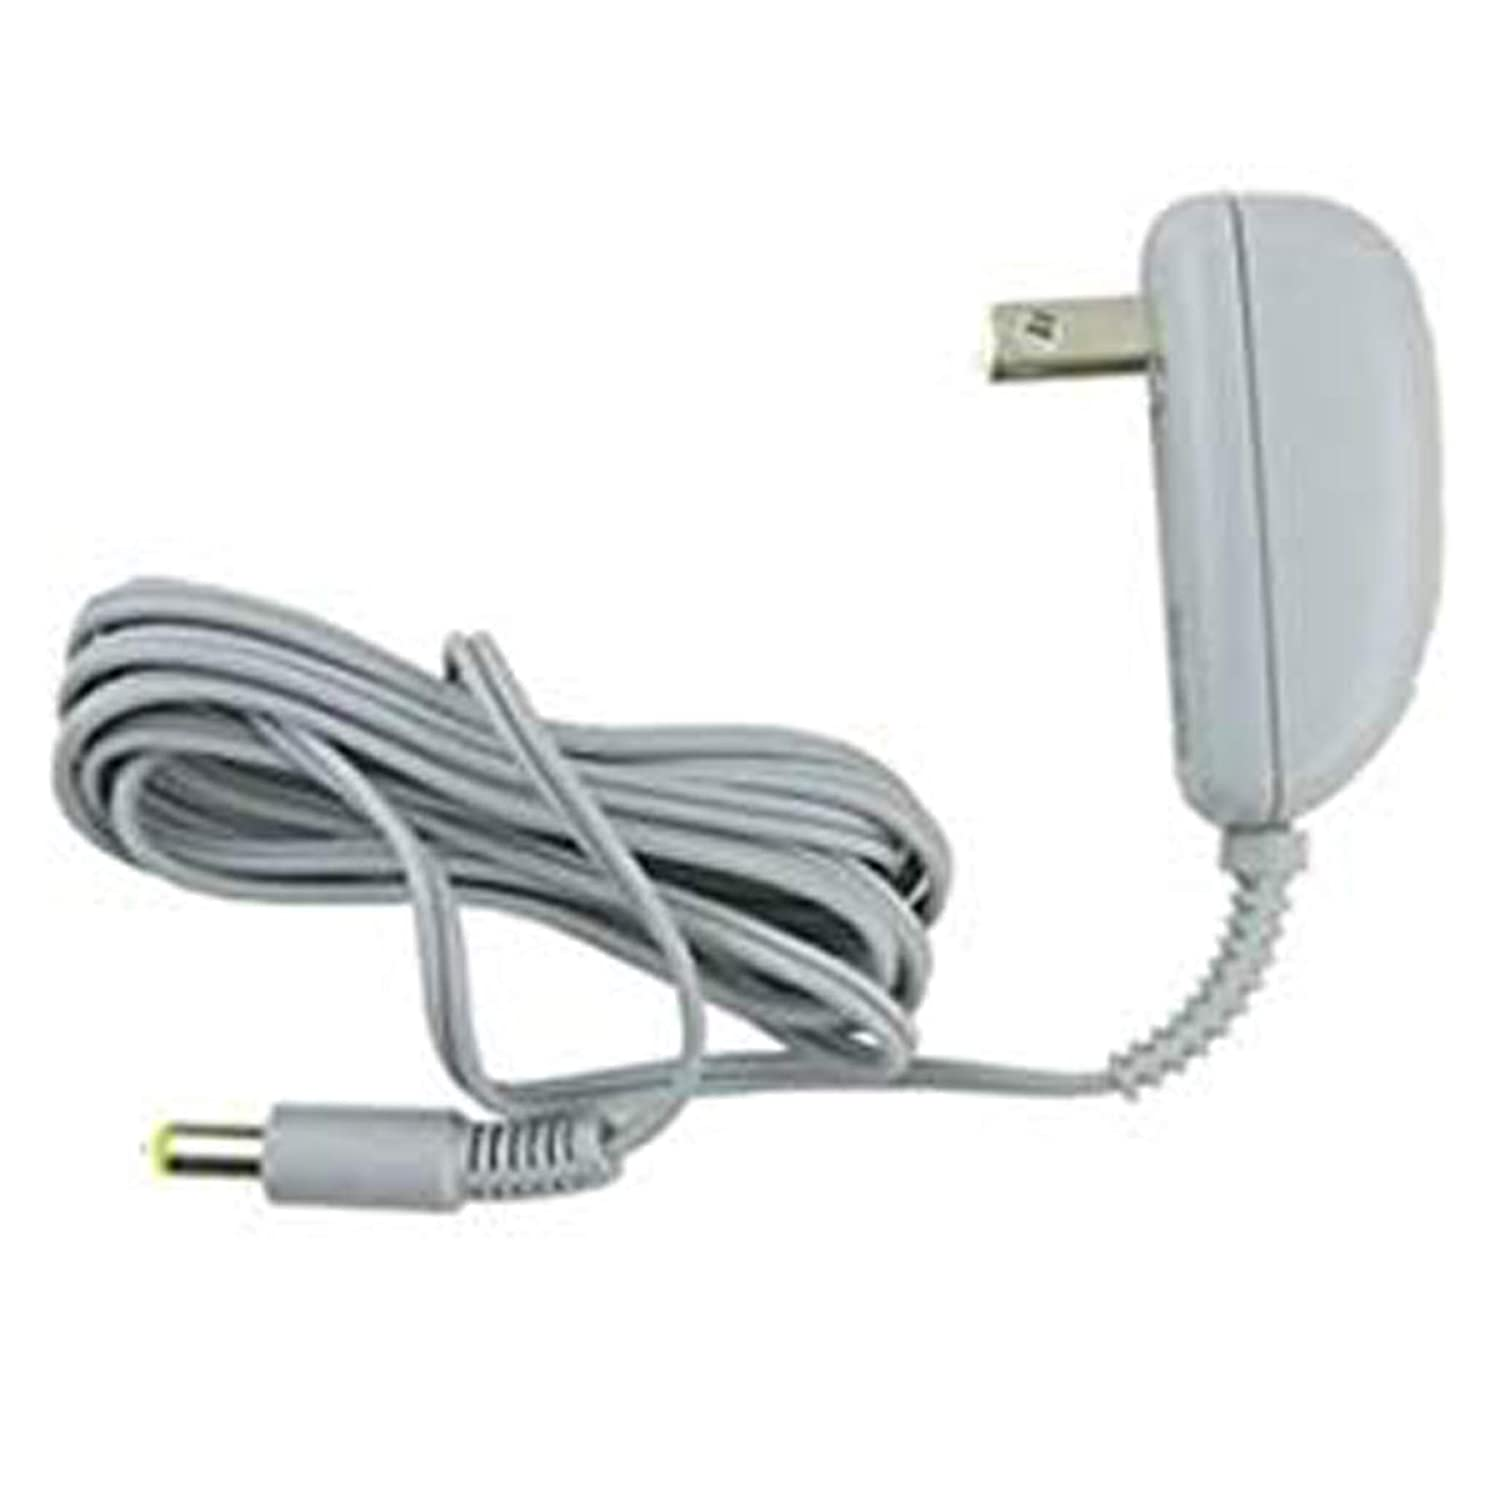 Fisher Price 4 in 1 Rock n Glide Replacement (CBT81 / CHP55 / CHP56 AC/DC ADAPTER (POWER SUPPLY CORD, CHARGER))